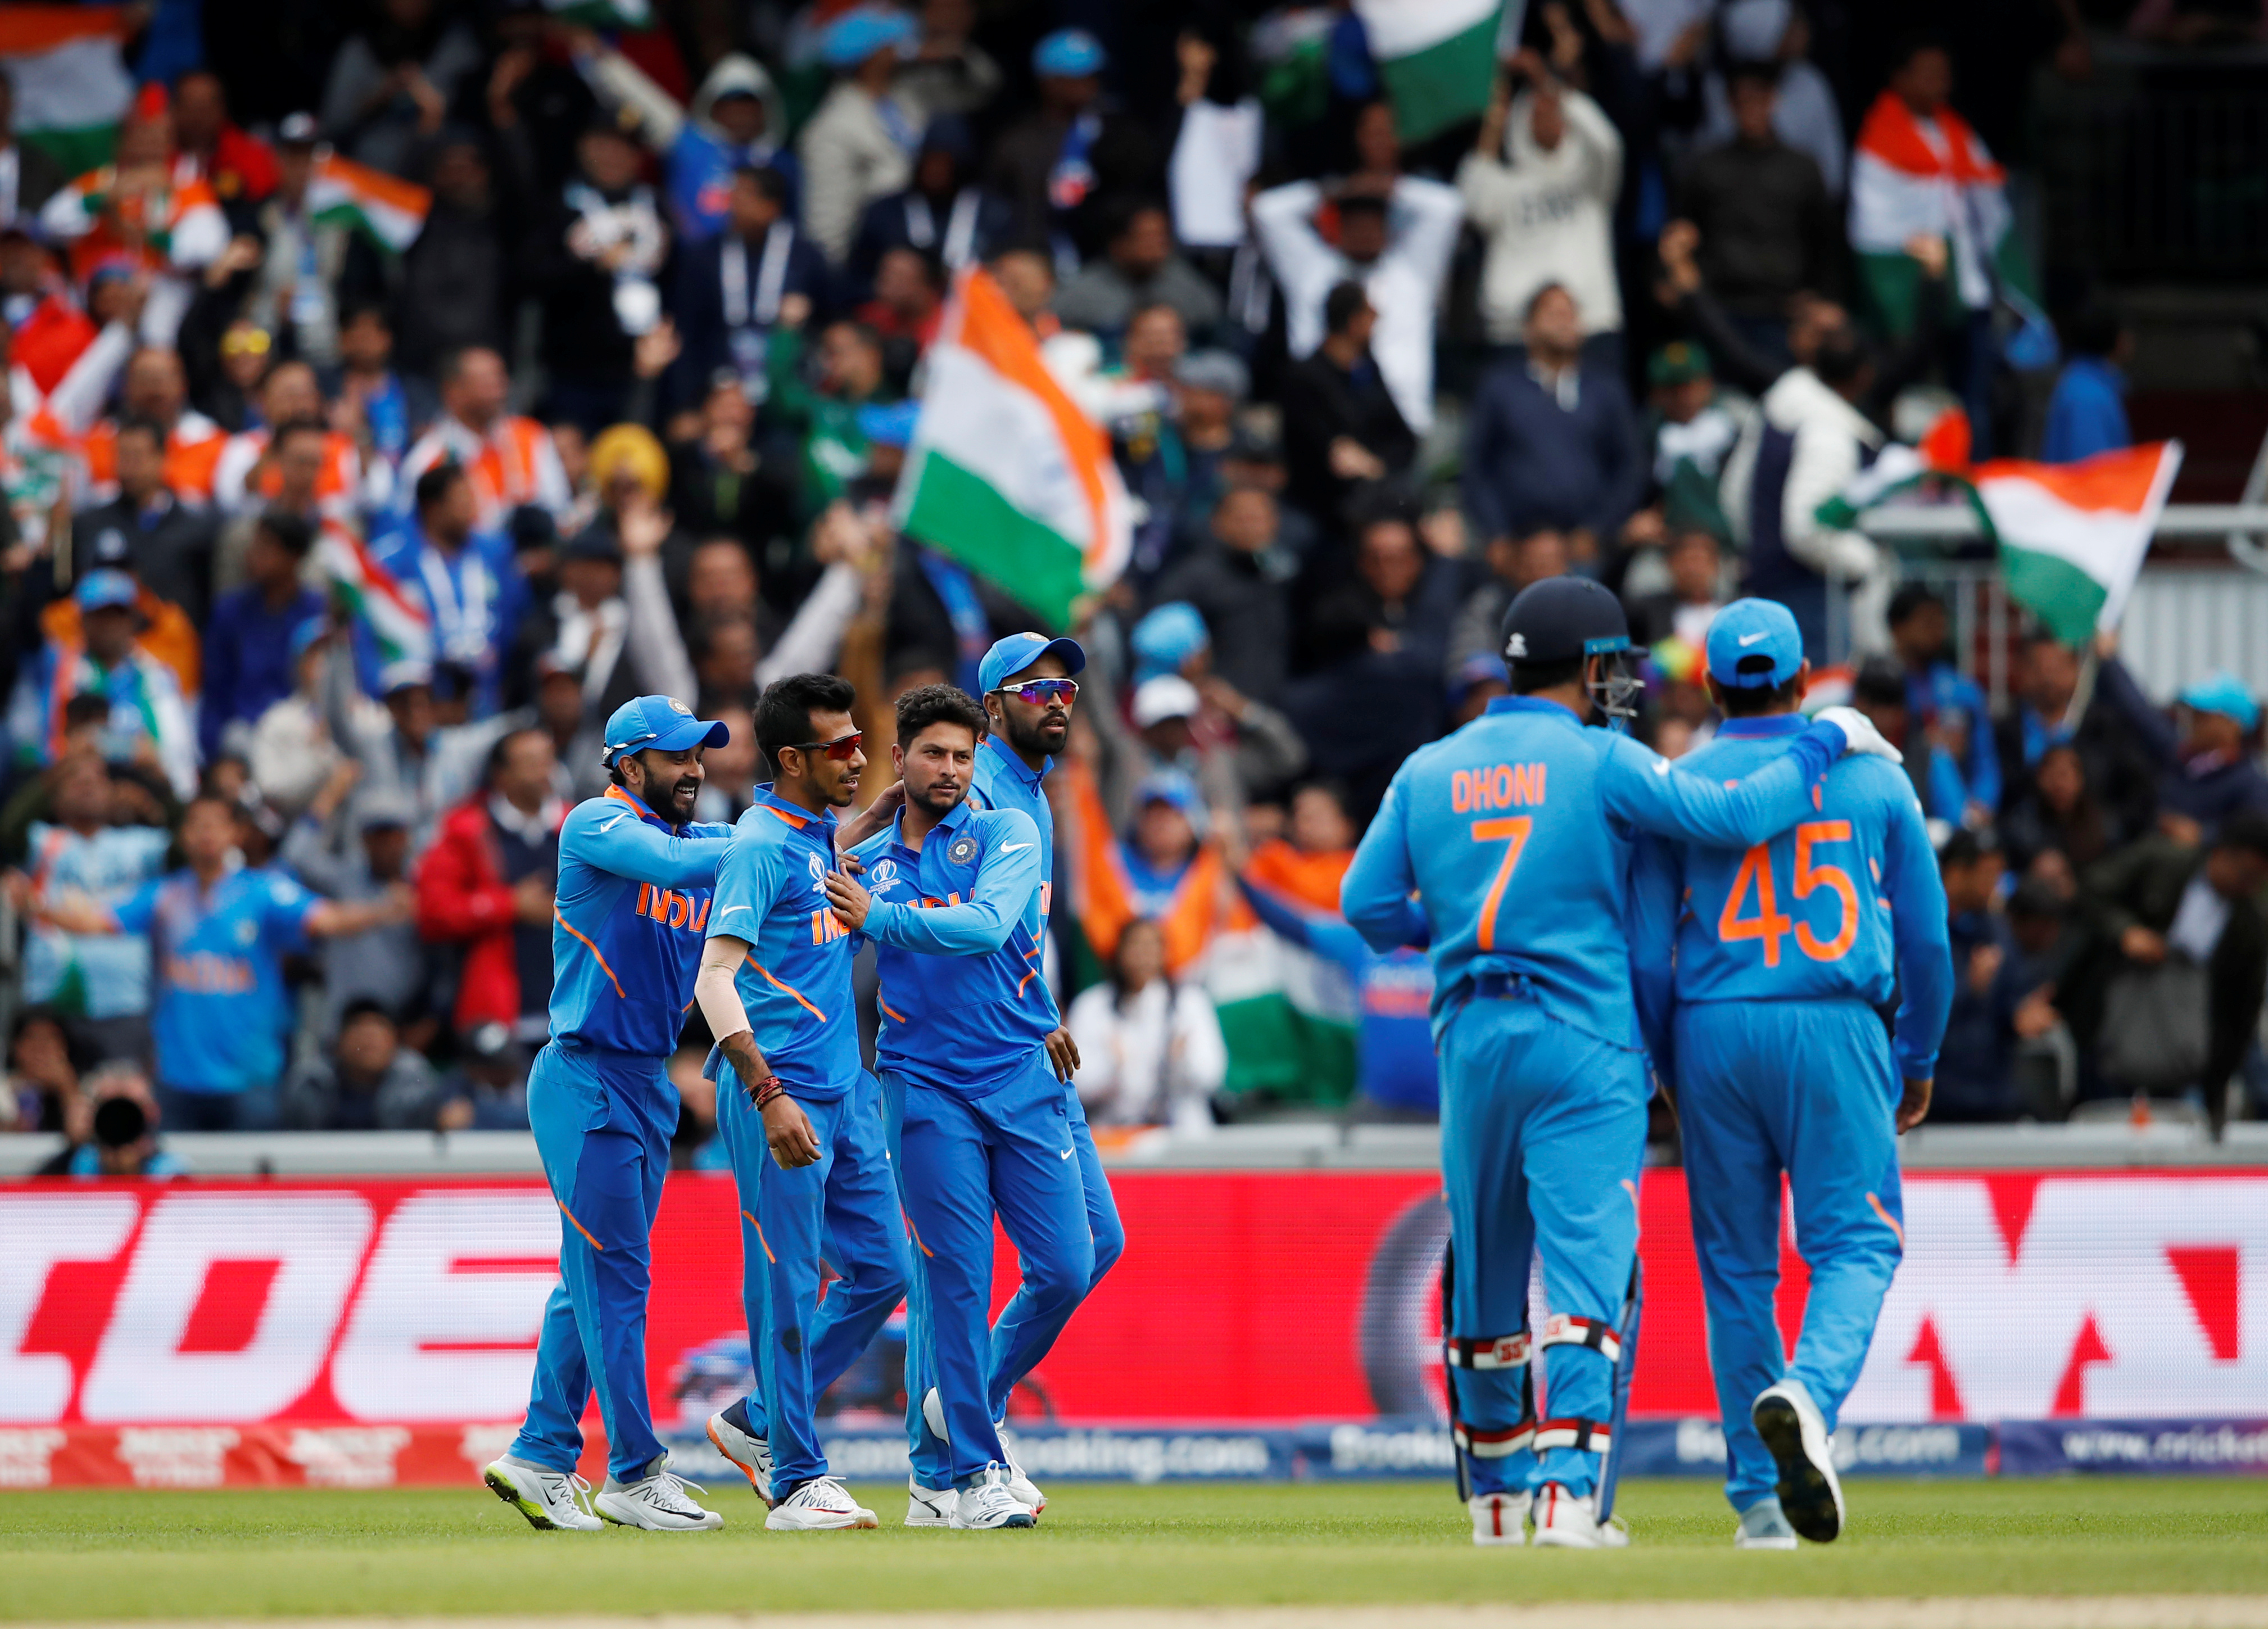 India's Kuldeep Yadav celebrates the wicket of Pakistan's Babar Azam with team mates.    (Action Images via Reuters/Andrew Boyers)